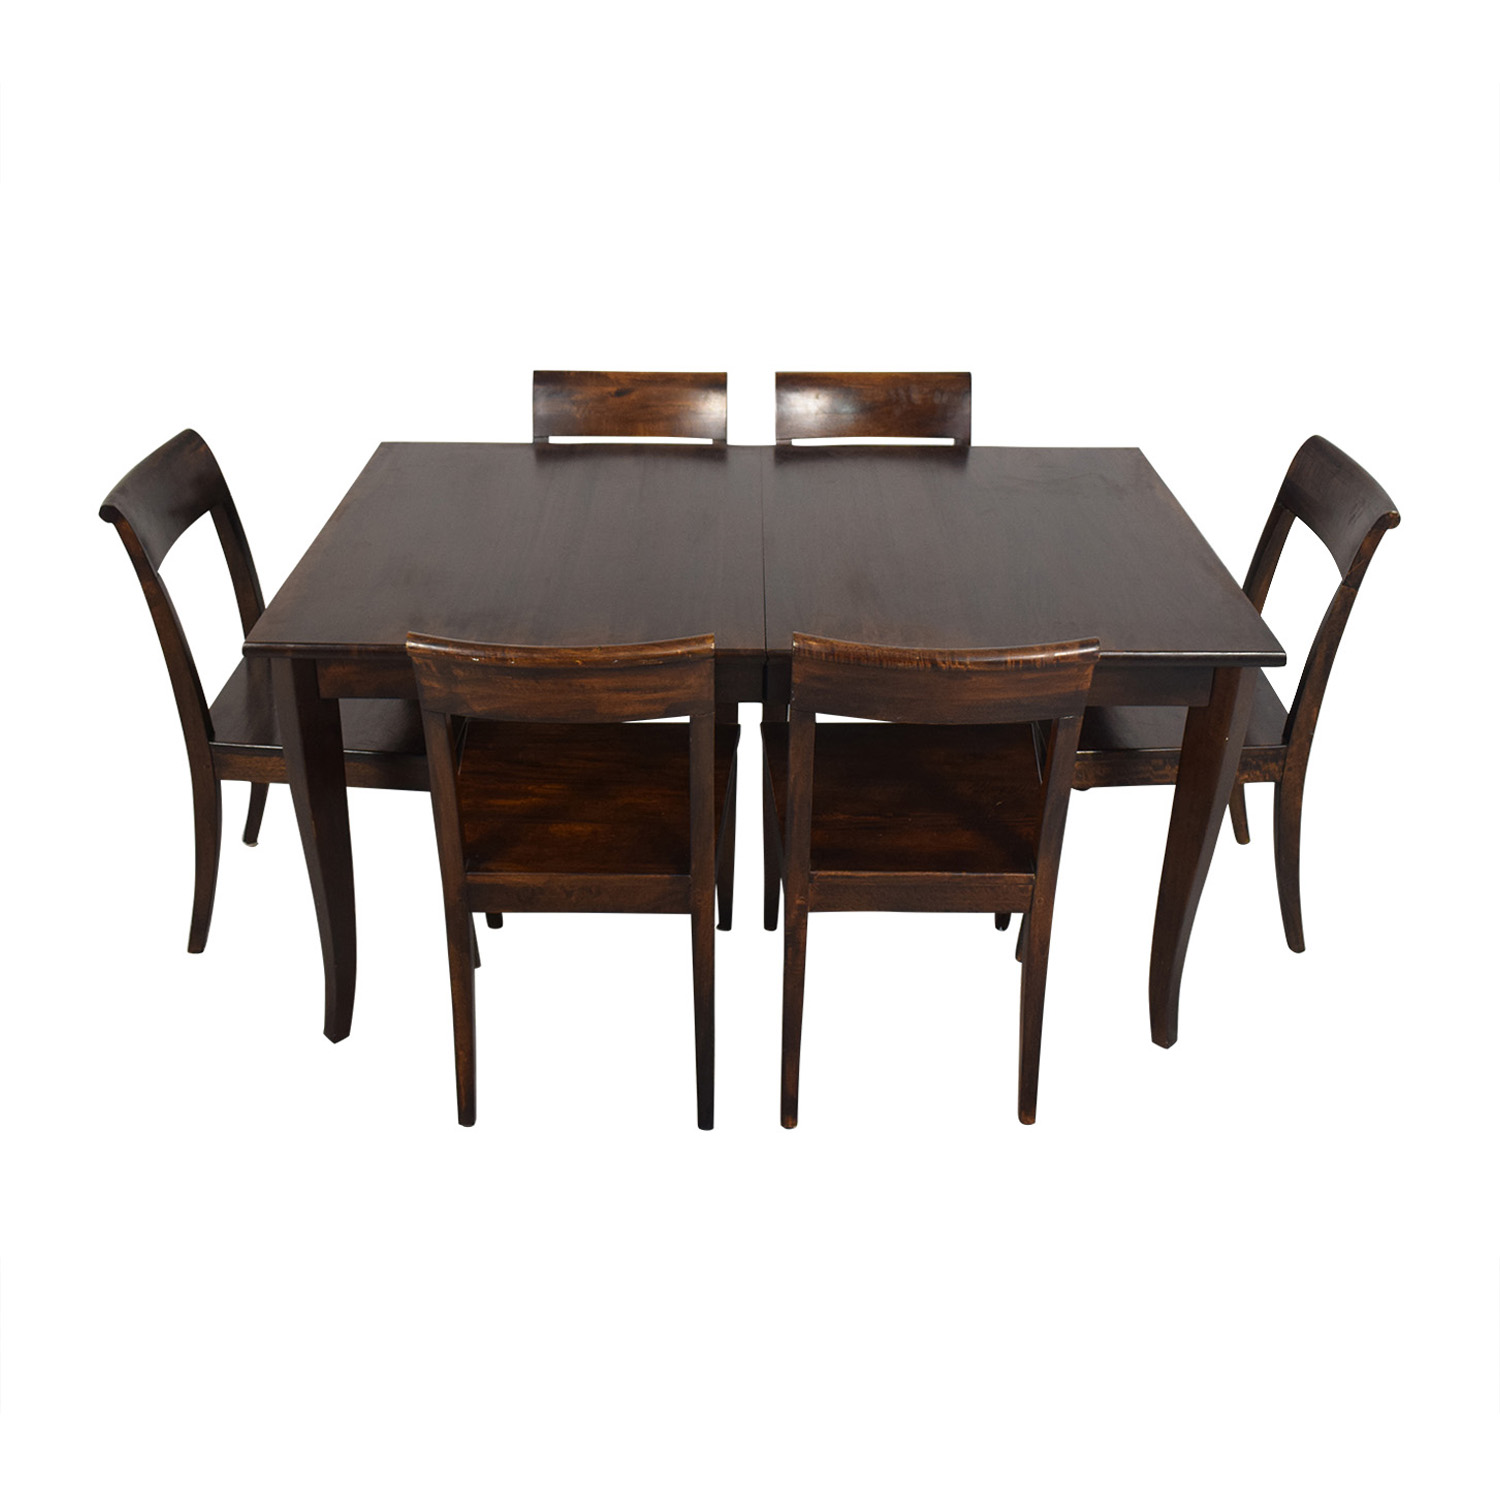 Crate & Barrel Crate & Barrel Cabria Table Dining Set nj